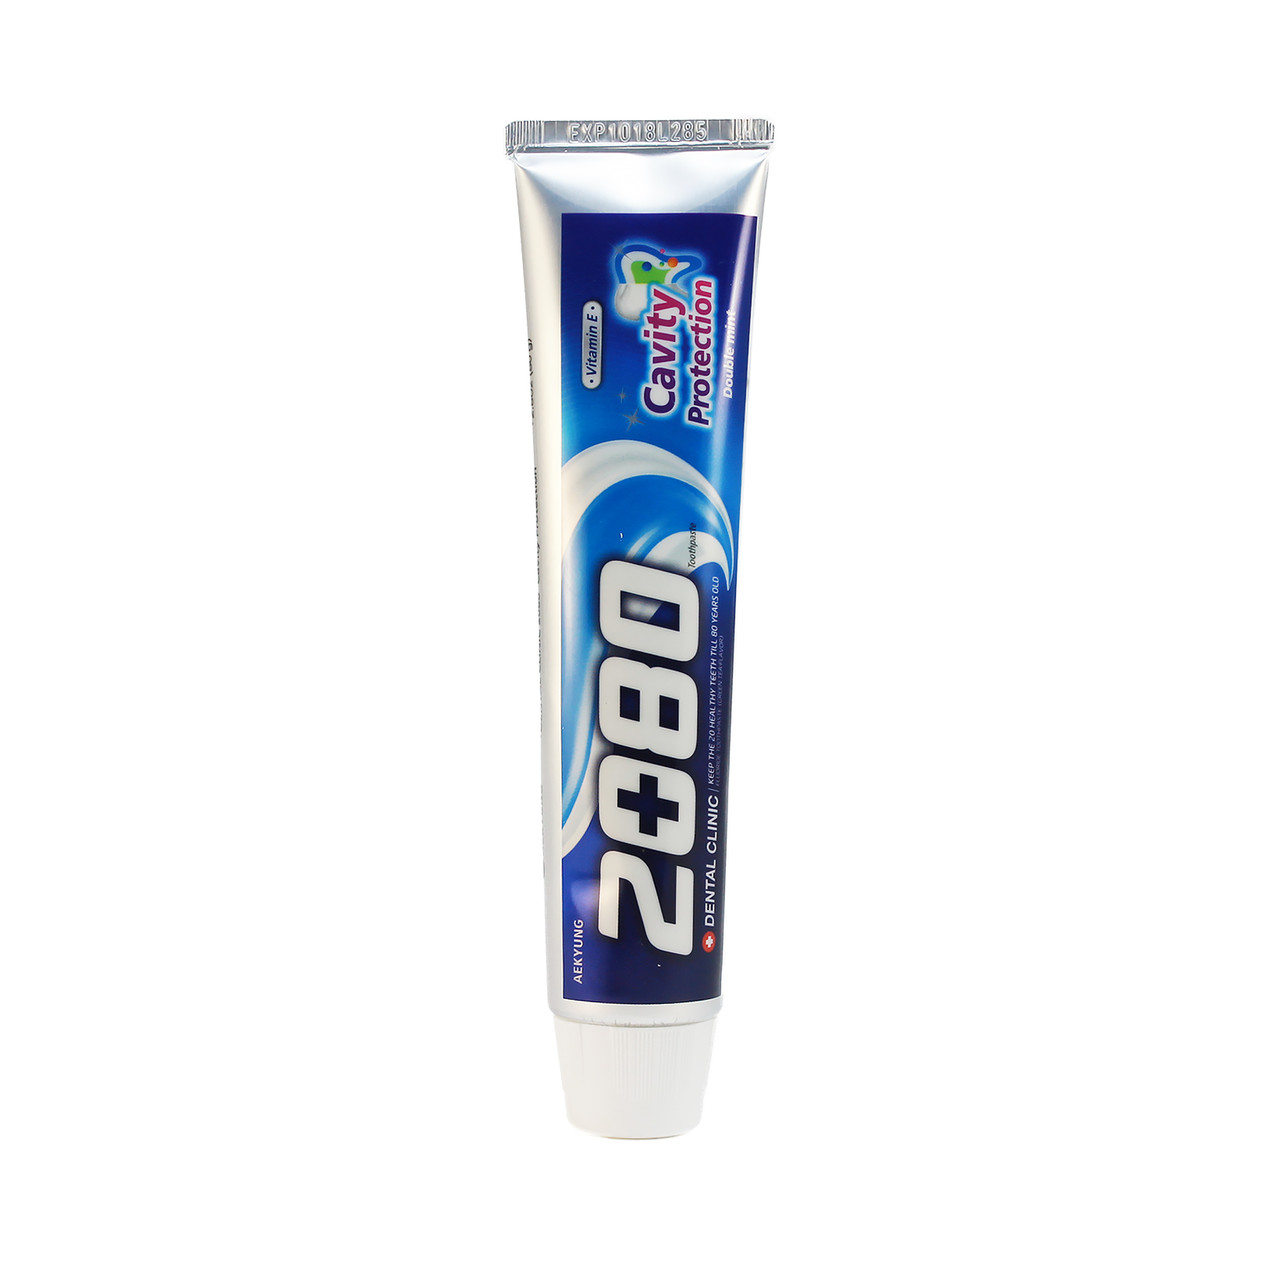 """Dental Clinic 2080 Toothpaste Cavity Protection Зубная паста """"Защита от кариеса"""" 160 гр"""